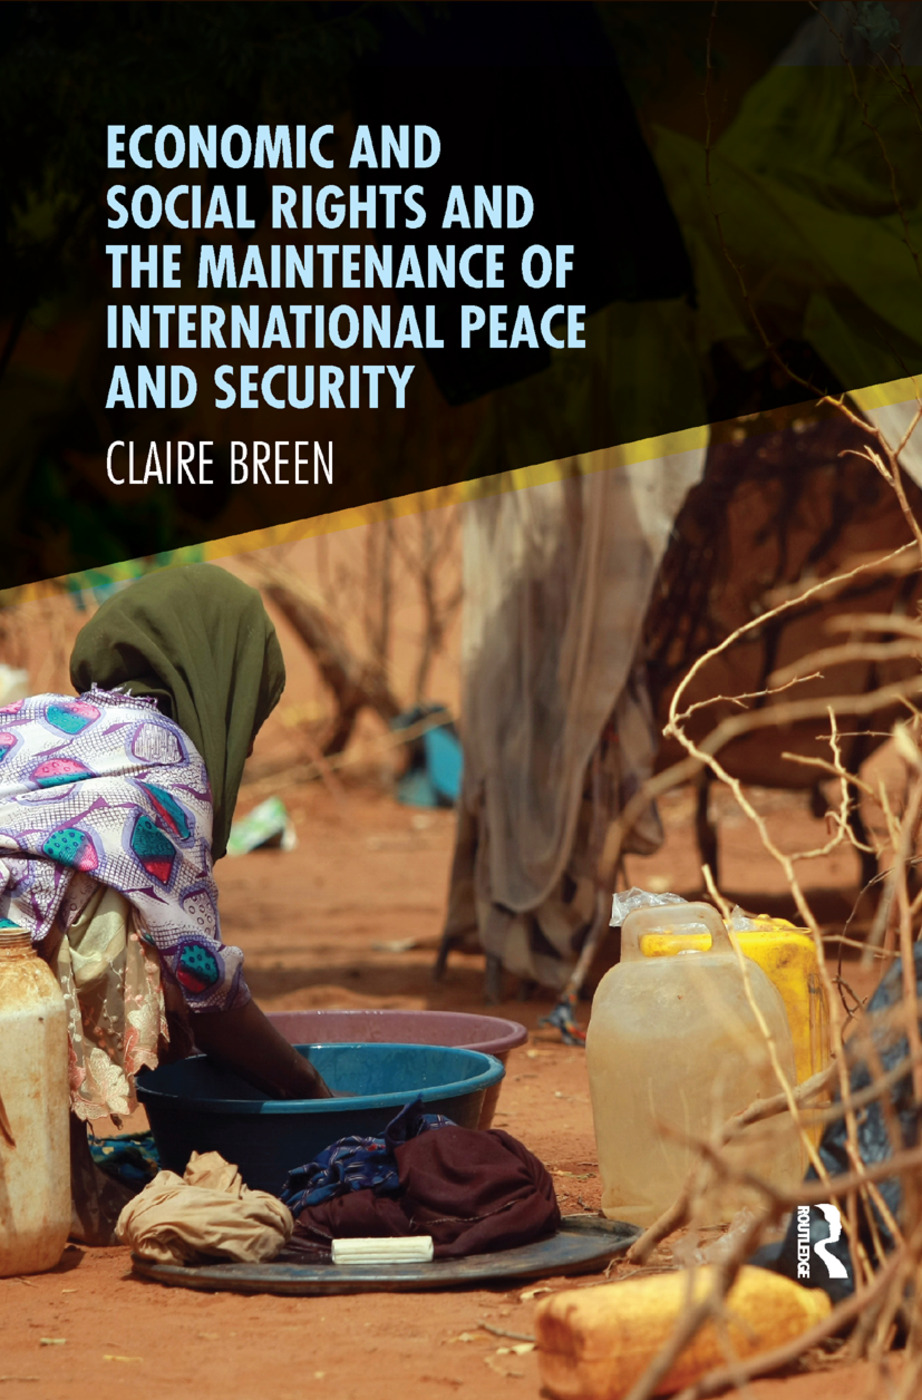 Economic and Social Rights and the Maintenance of International Peace and Security book cover